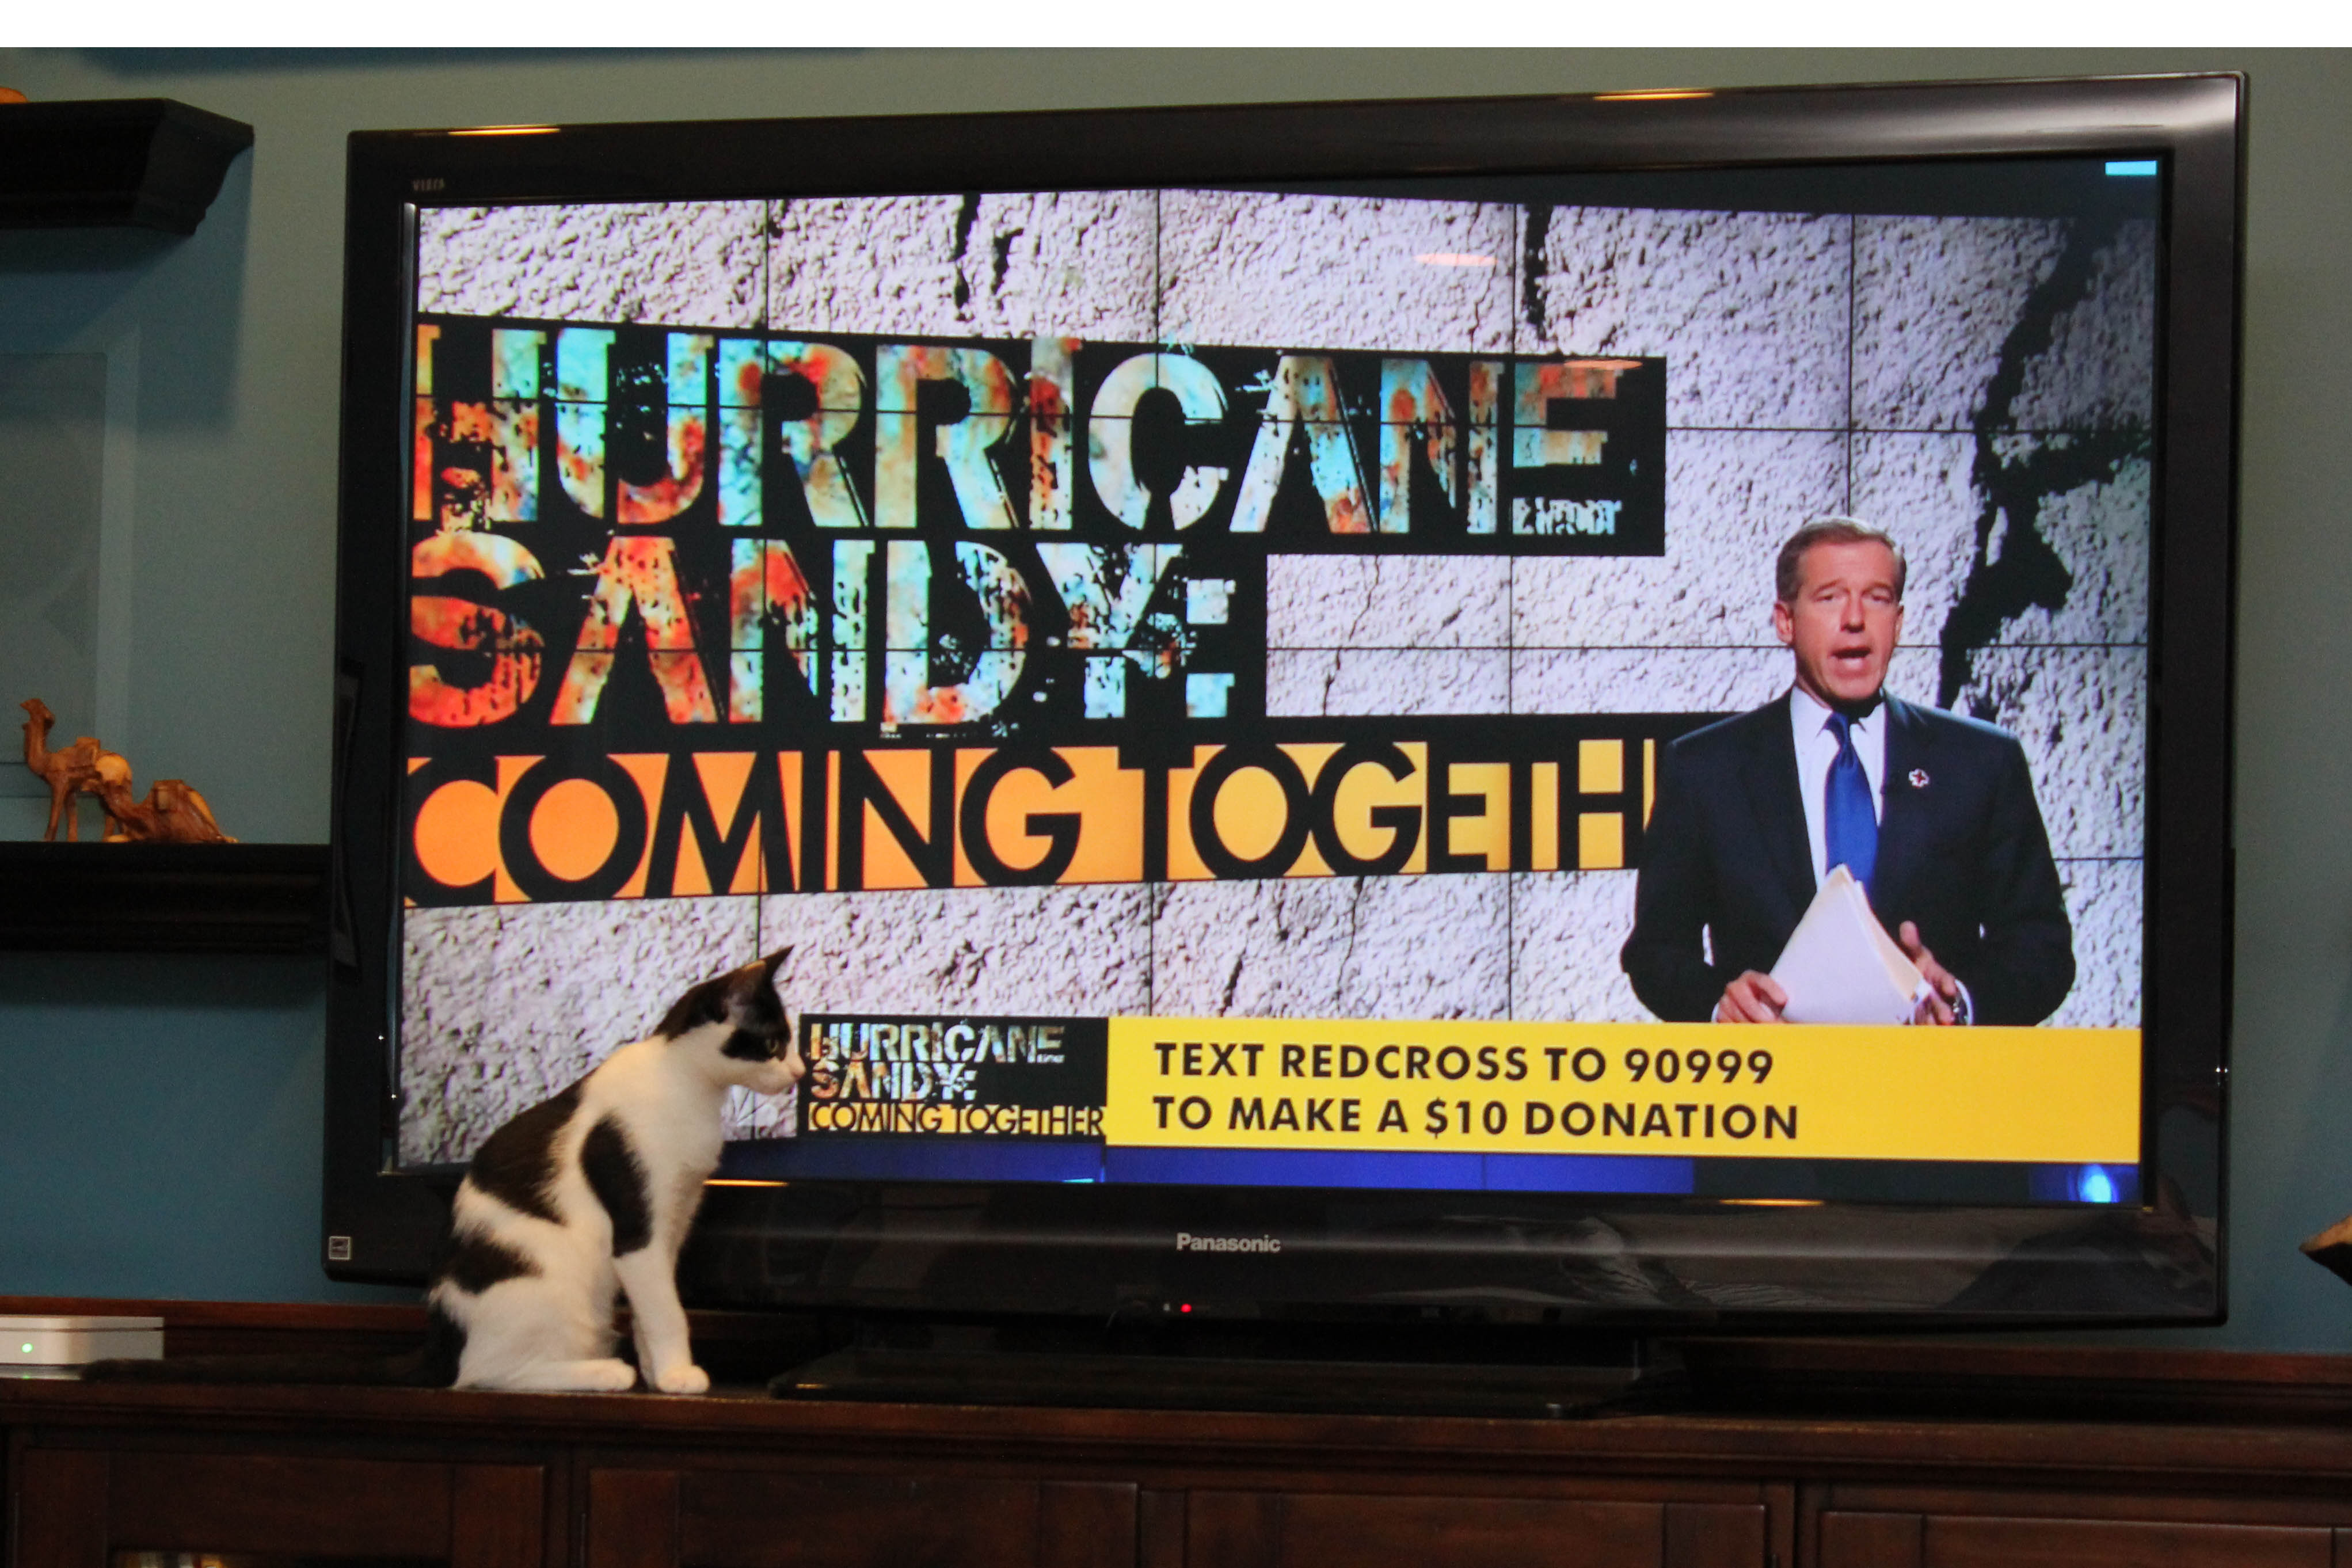 Elsa Claira the cat encourages people to call the red cross to donate to Hurricane Sandy relief